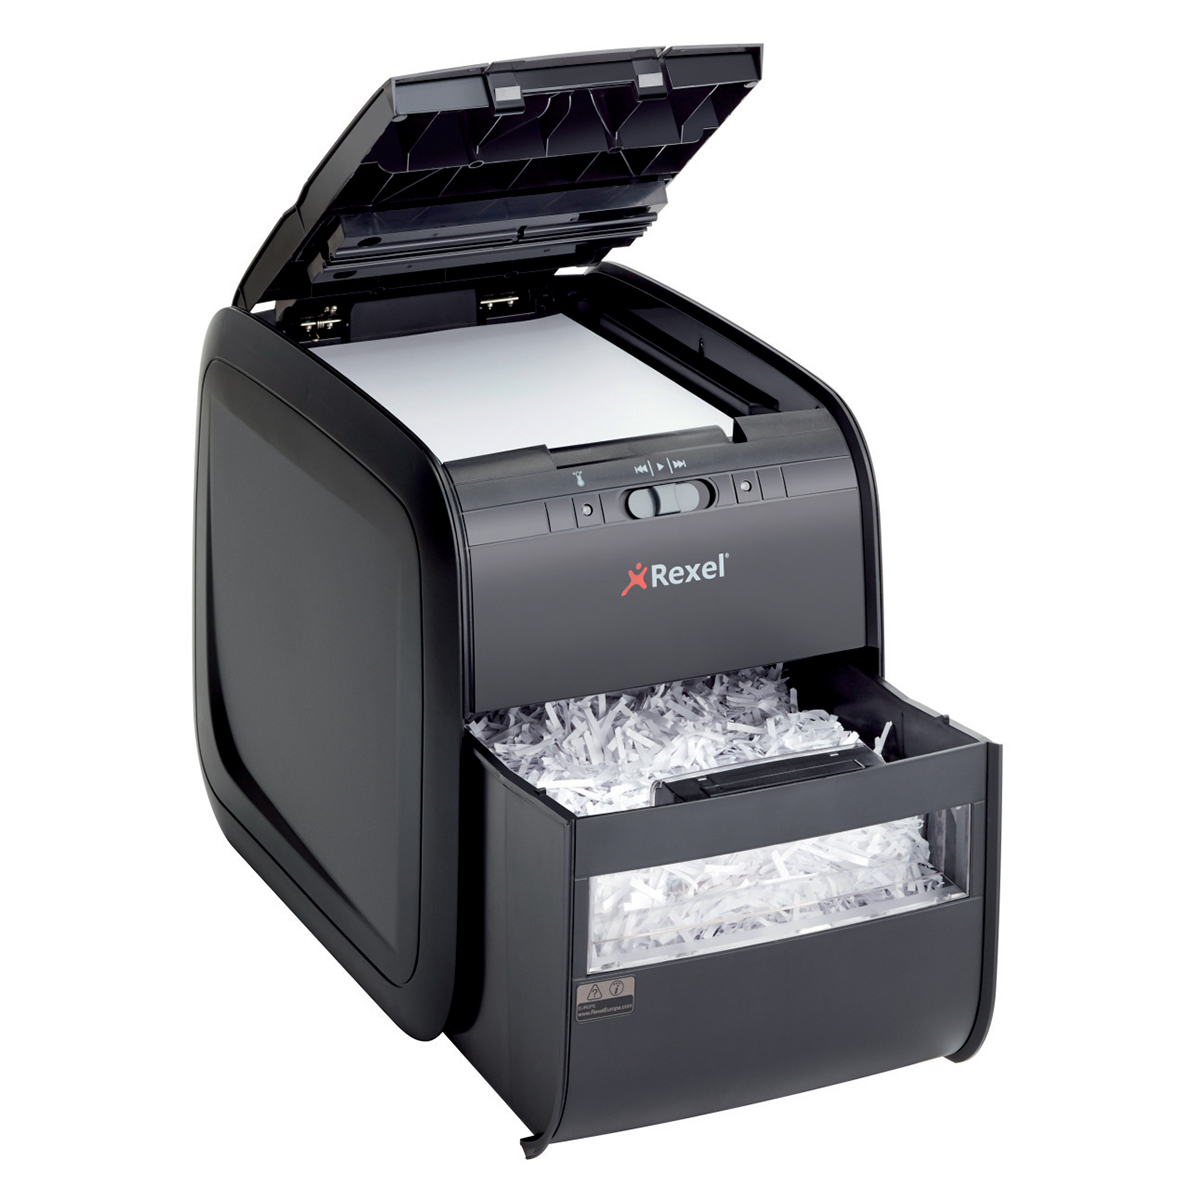 Rexel Autoplus 60X Cross Cut Shredder